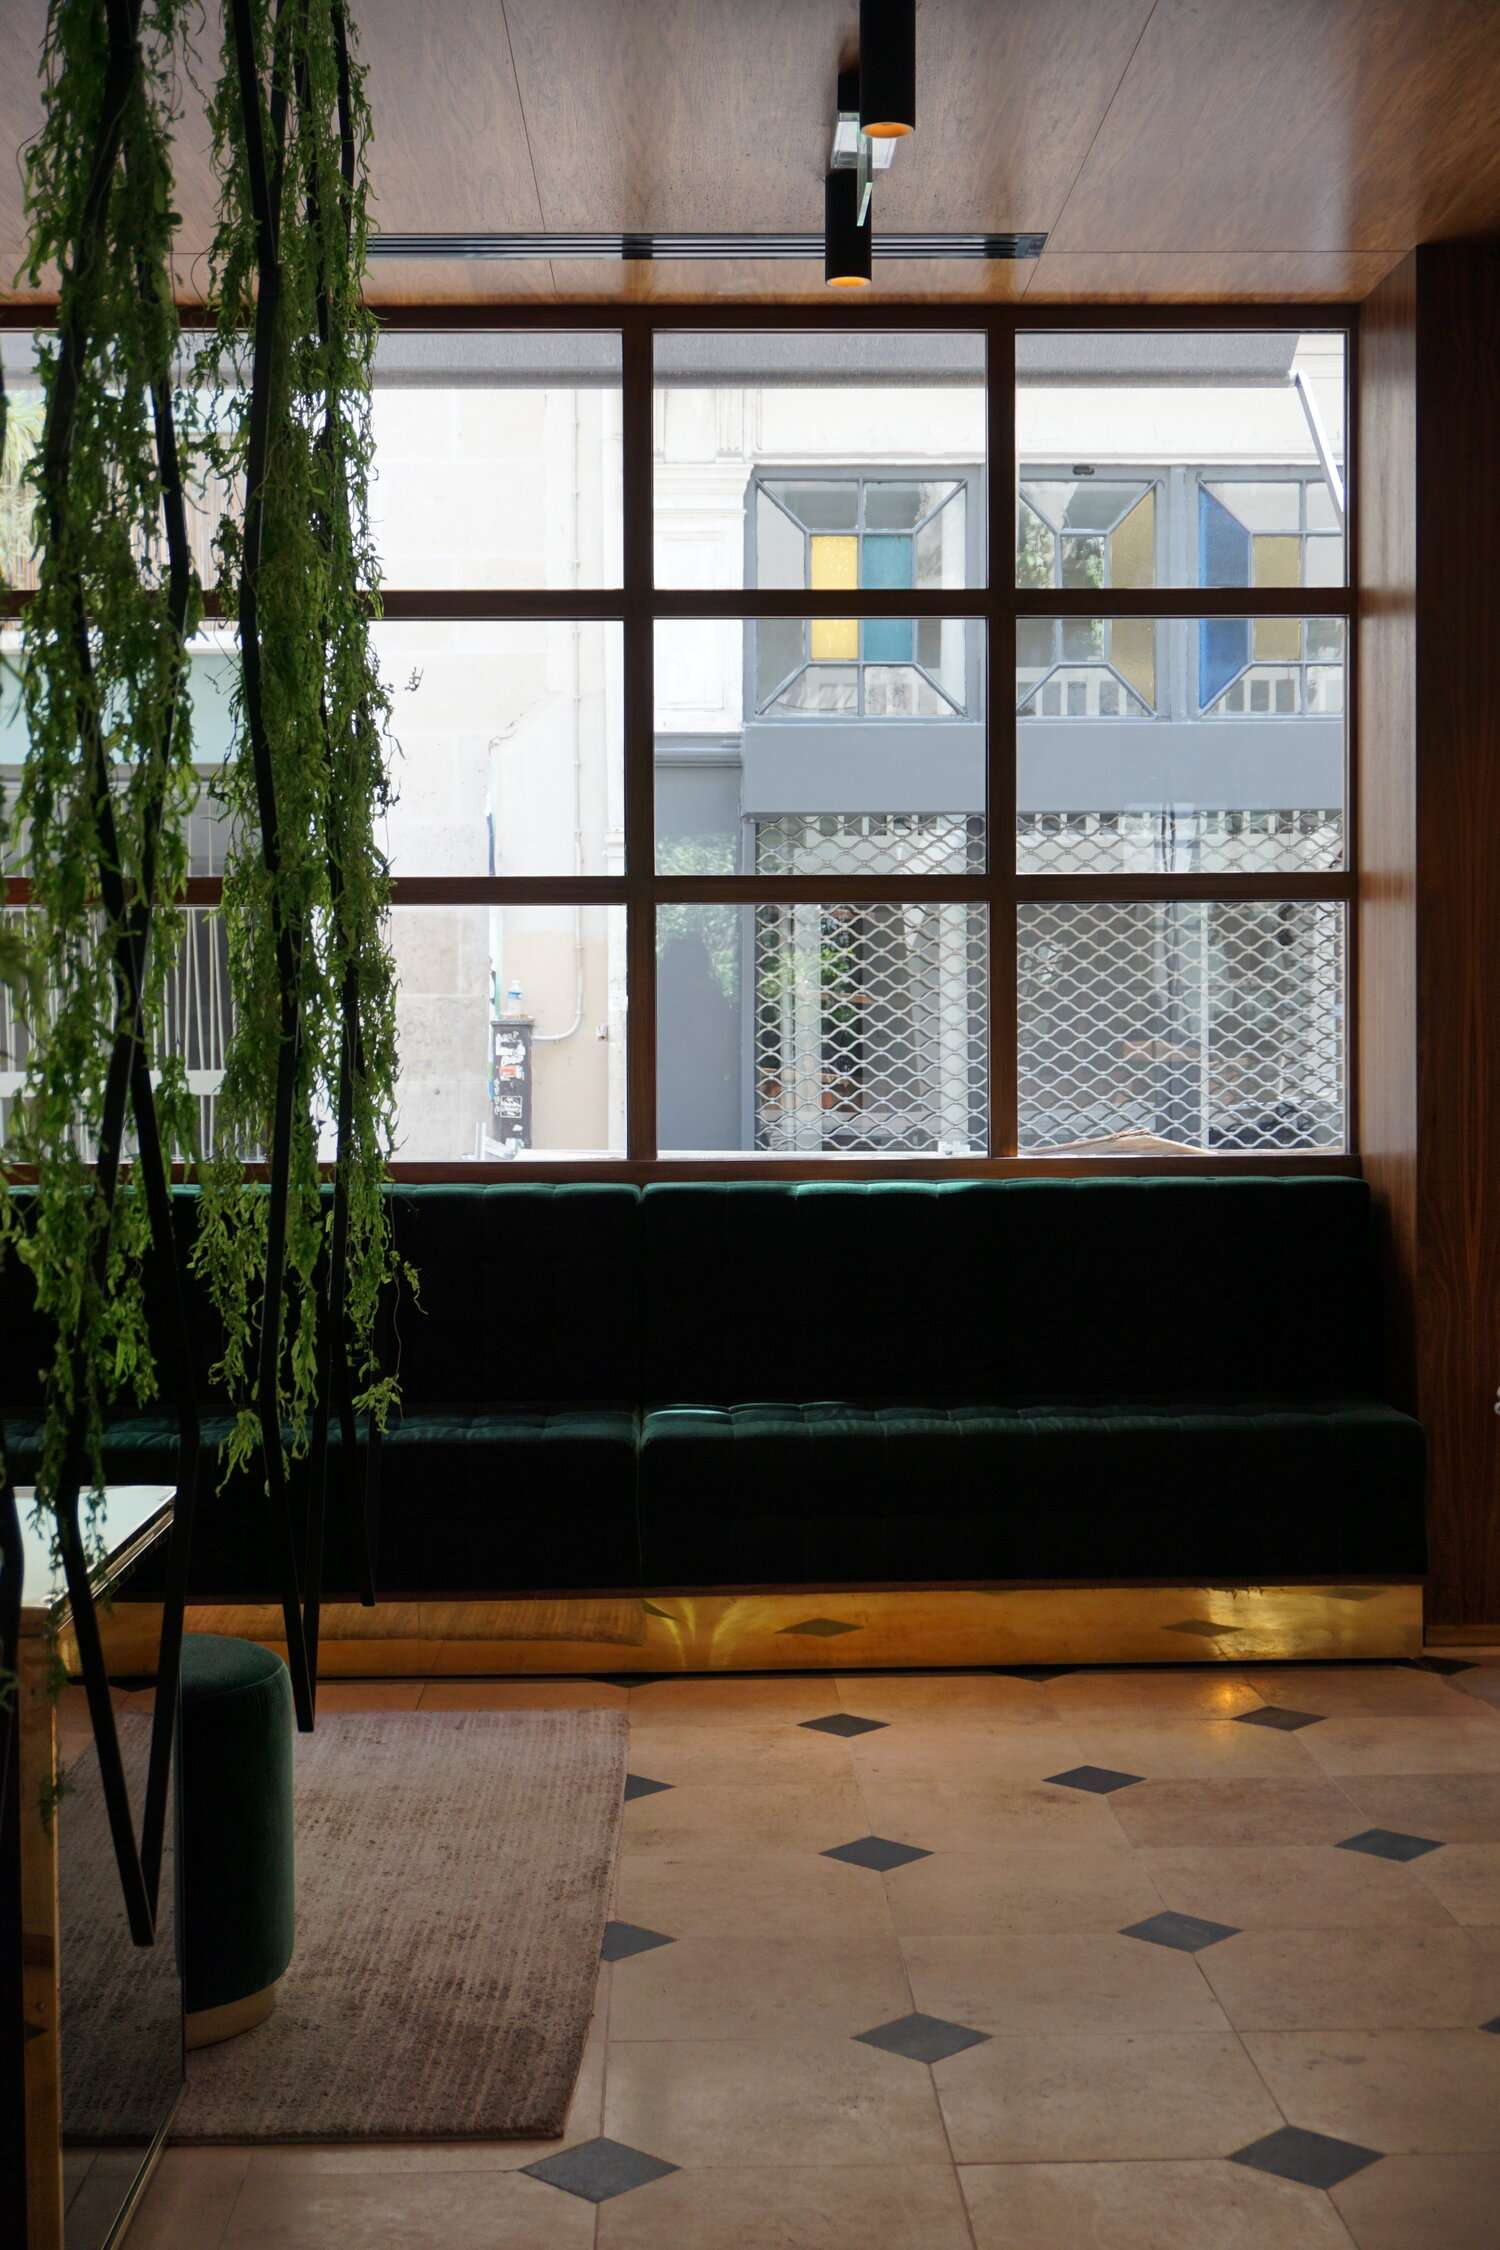 plants hang in the window in the foyer of Le Hotel Parister in Paris